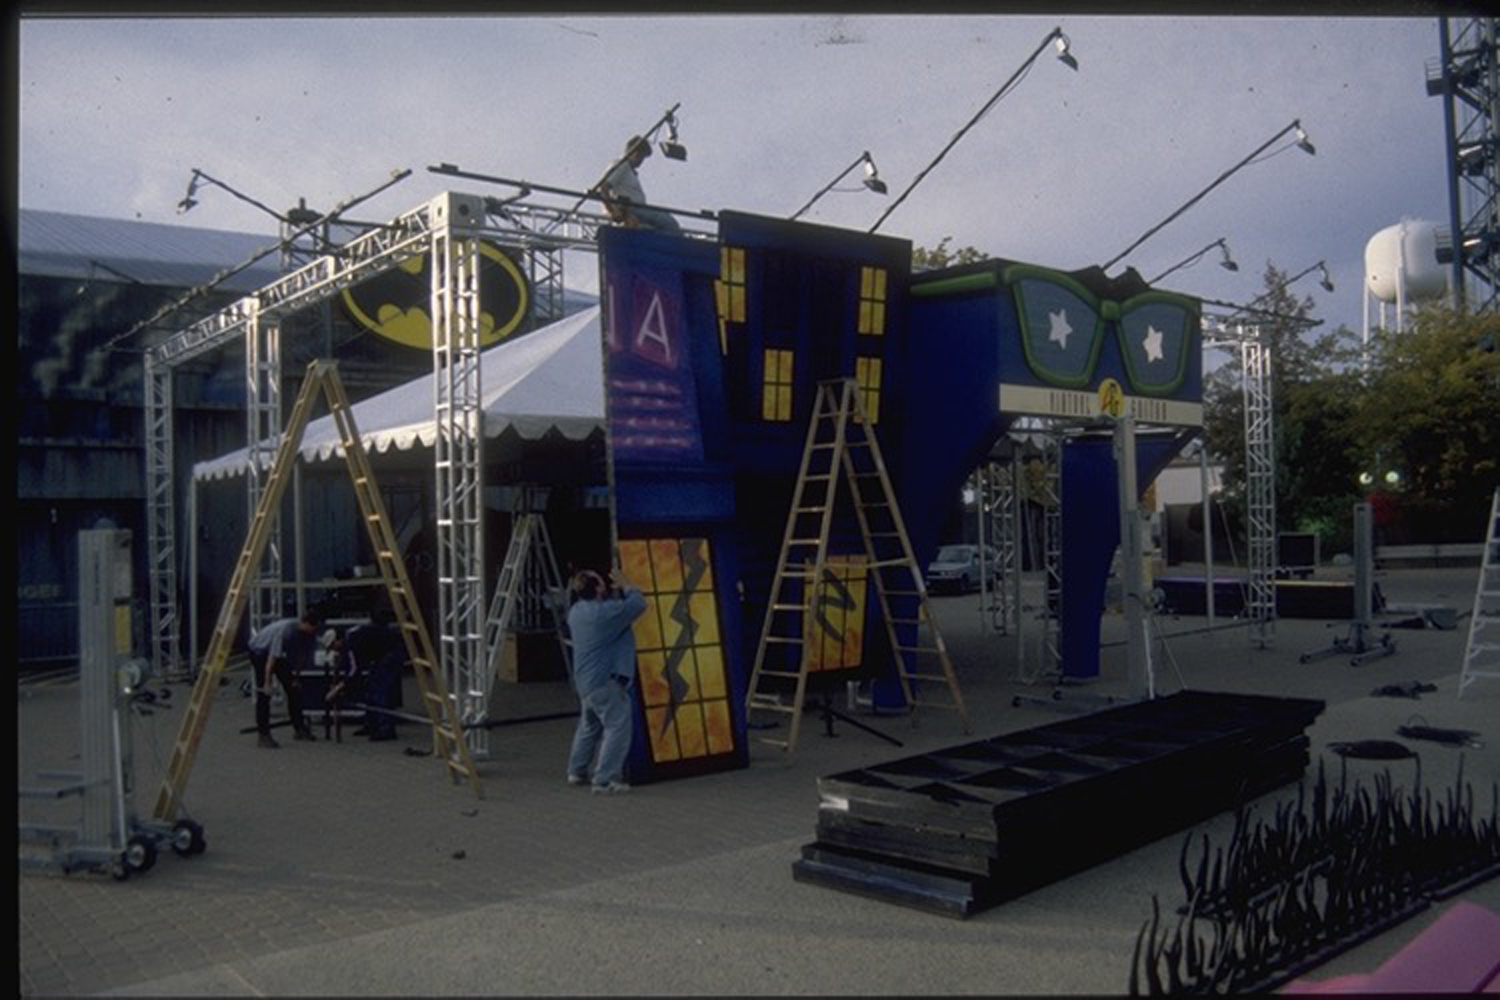 Virtual Guitar Launch -  Build process. Interior of tent contained gaming modules & stage with full audio set-up